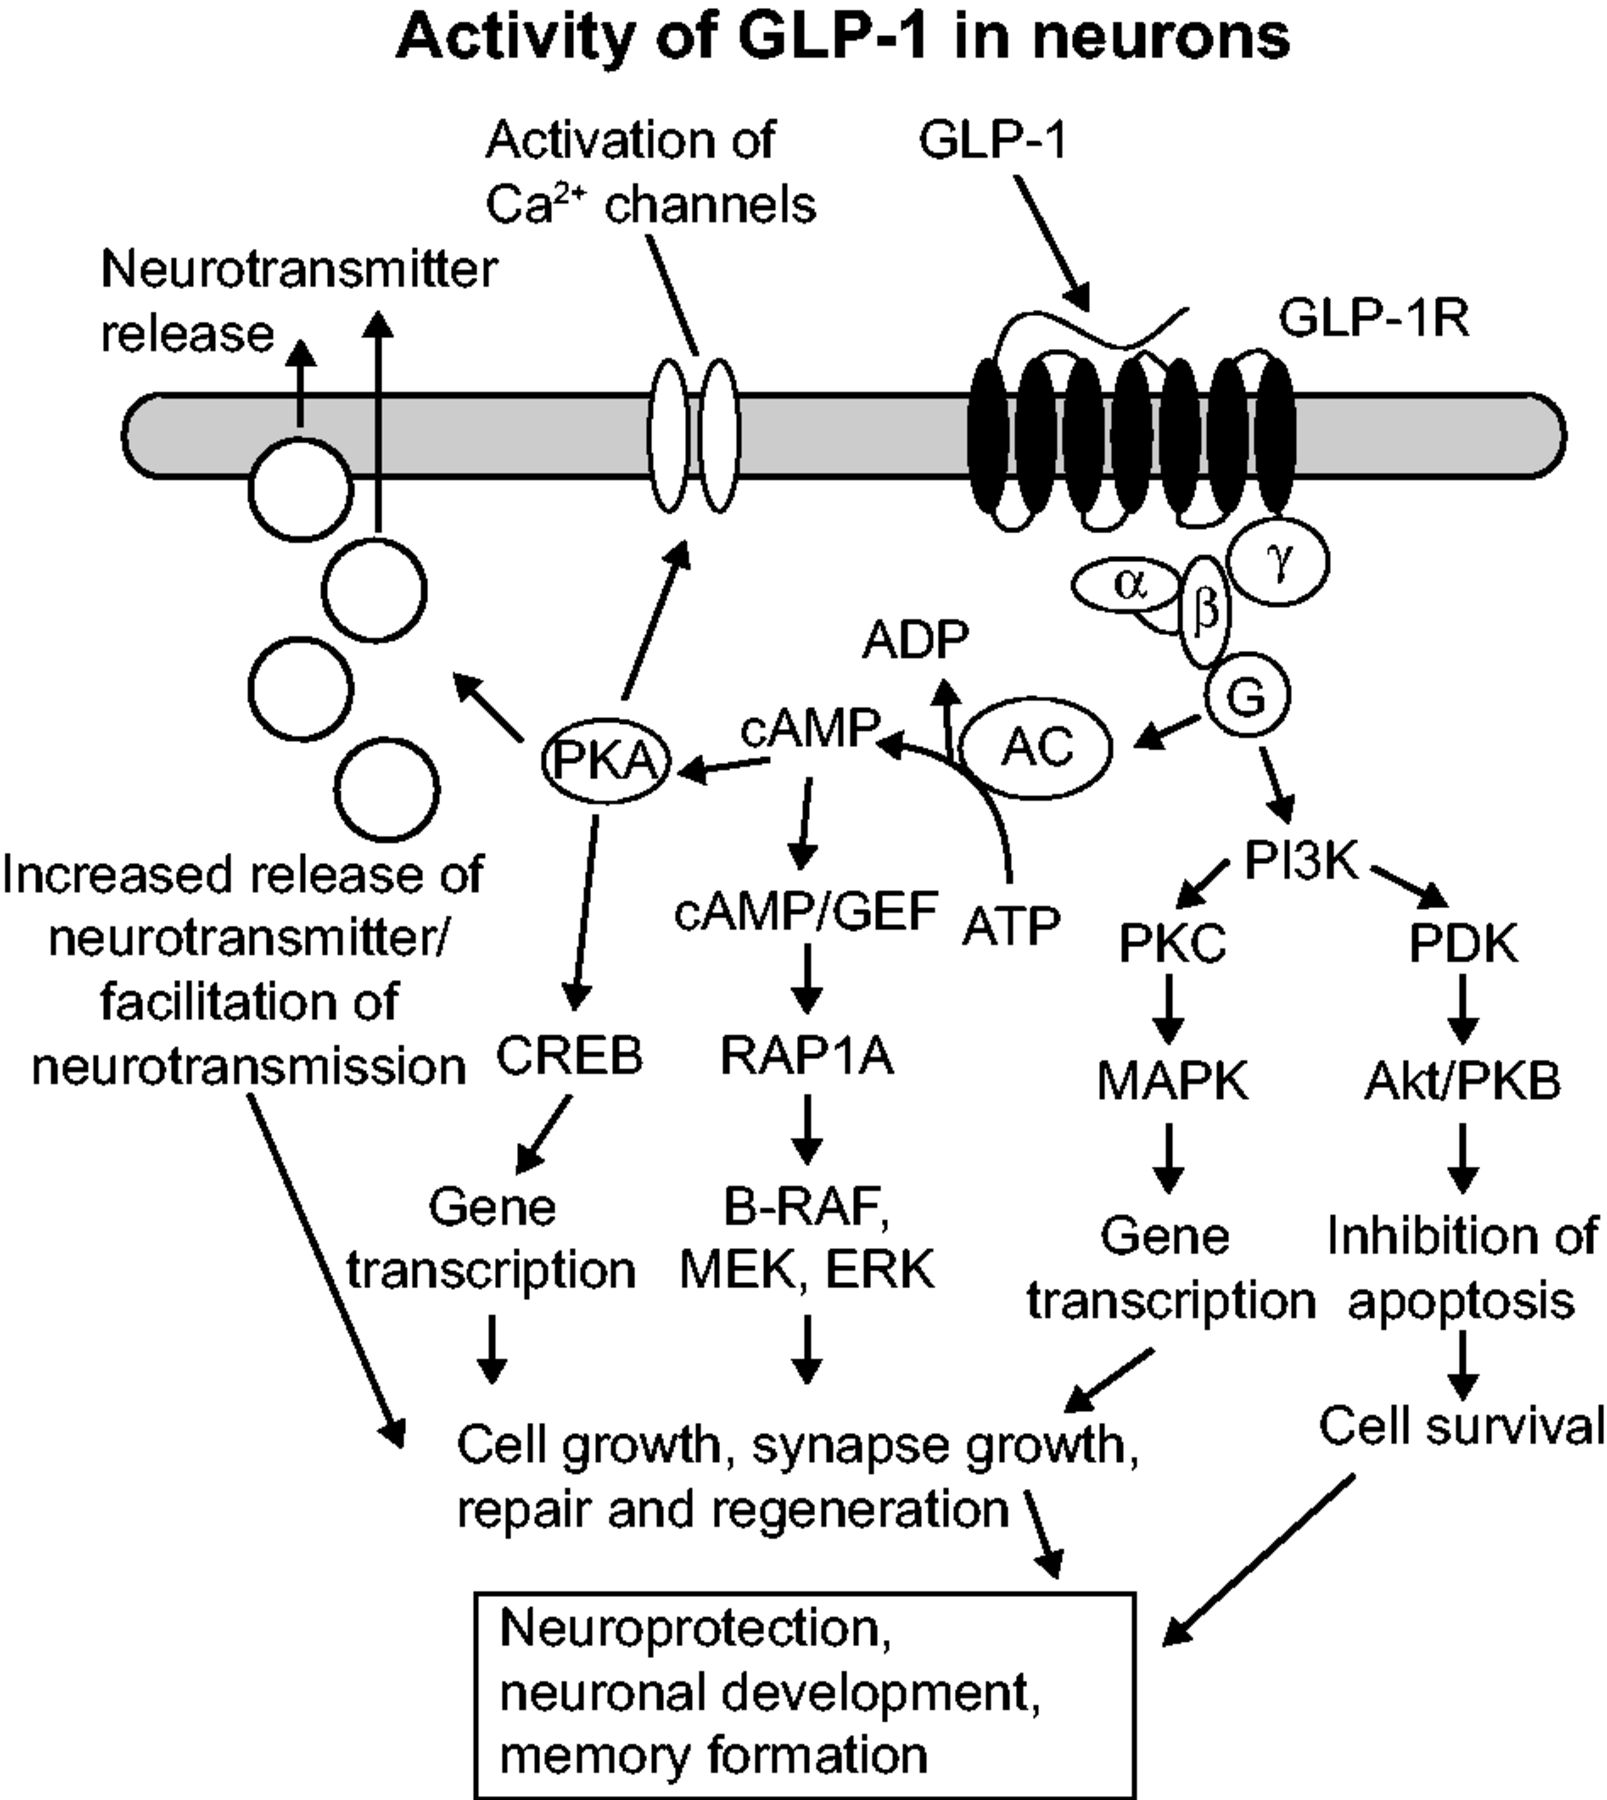 Central effects of GLP-1: new opportunities for treatments of